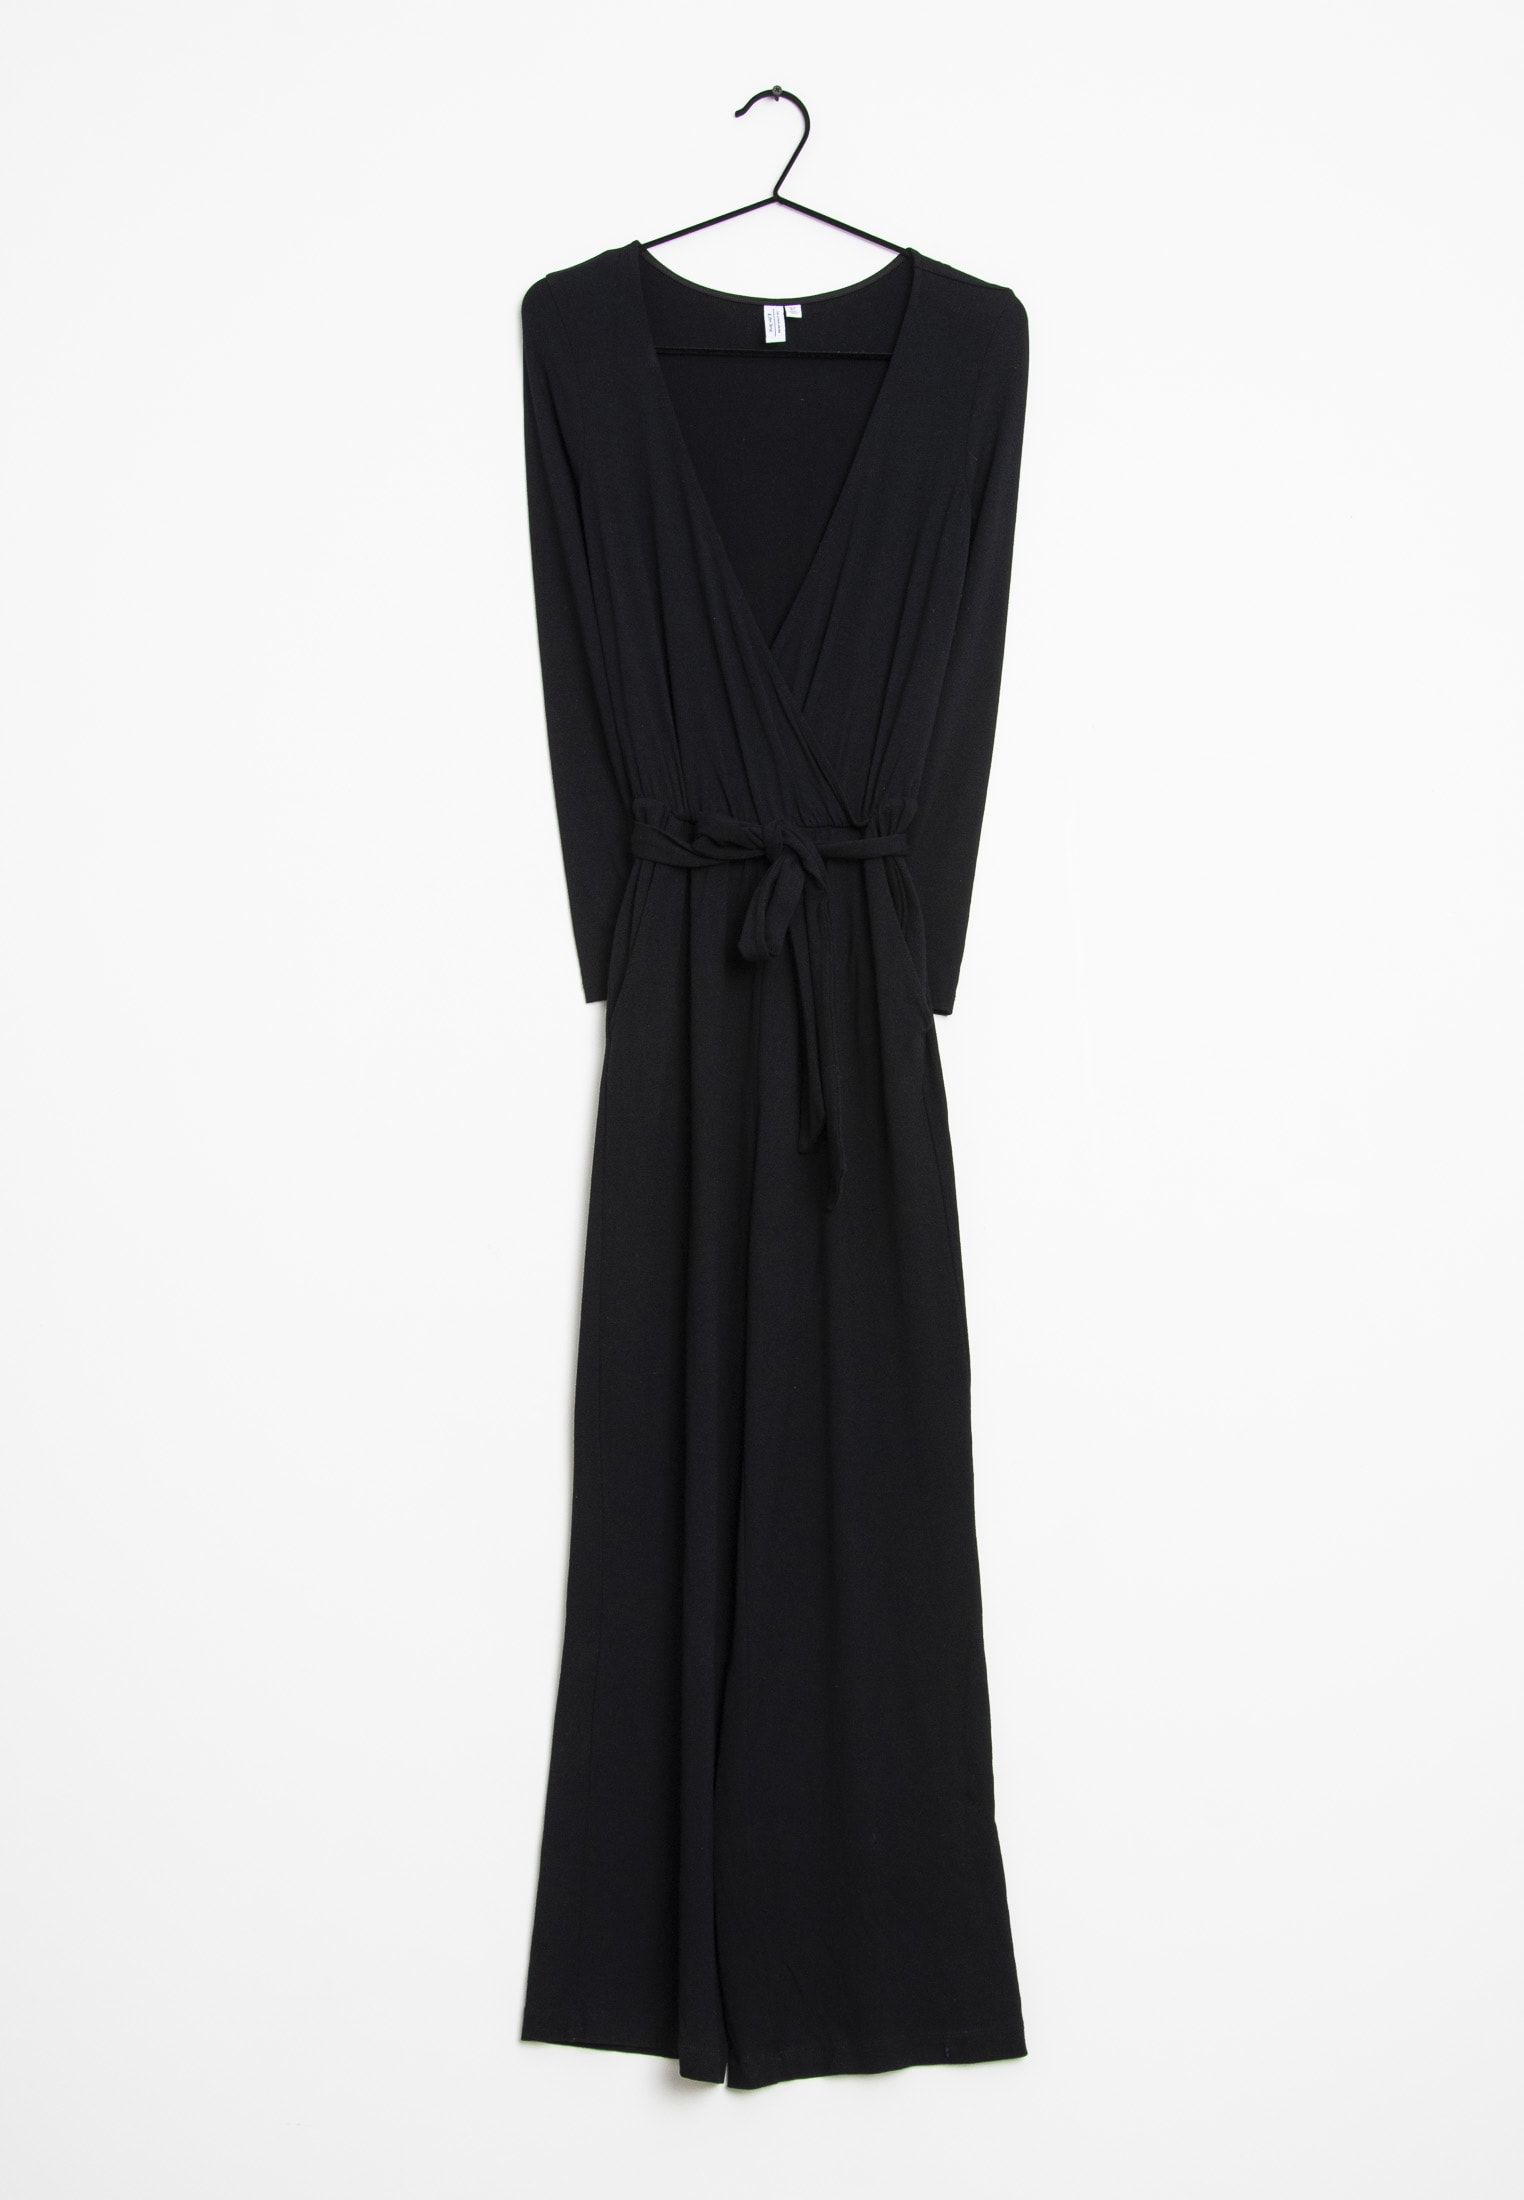 & other stories Jumpsuit / Overall Schwarz Gr.34